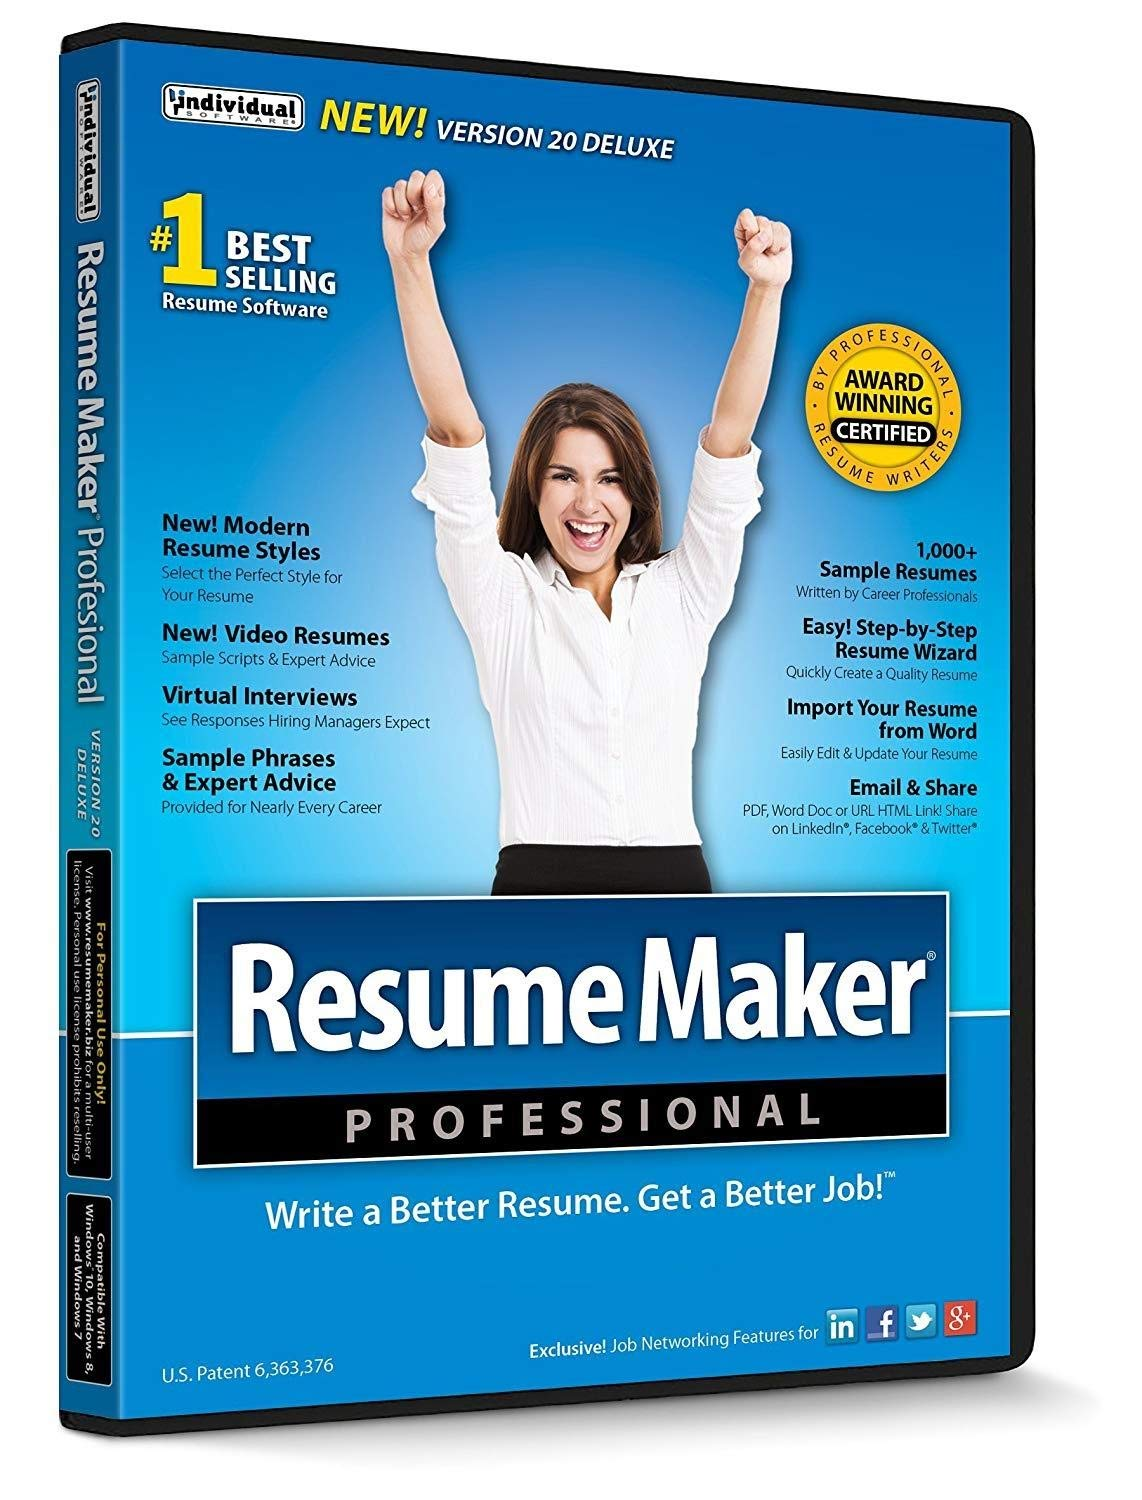 ResumeMaker Professional Deluxe 20 by Individual Software